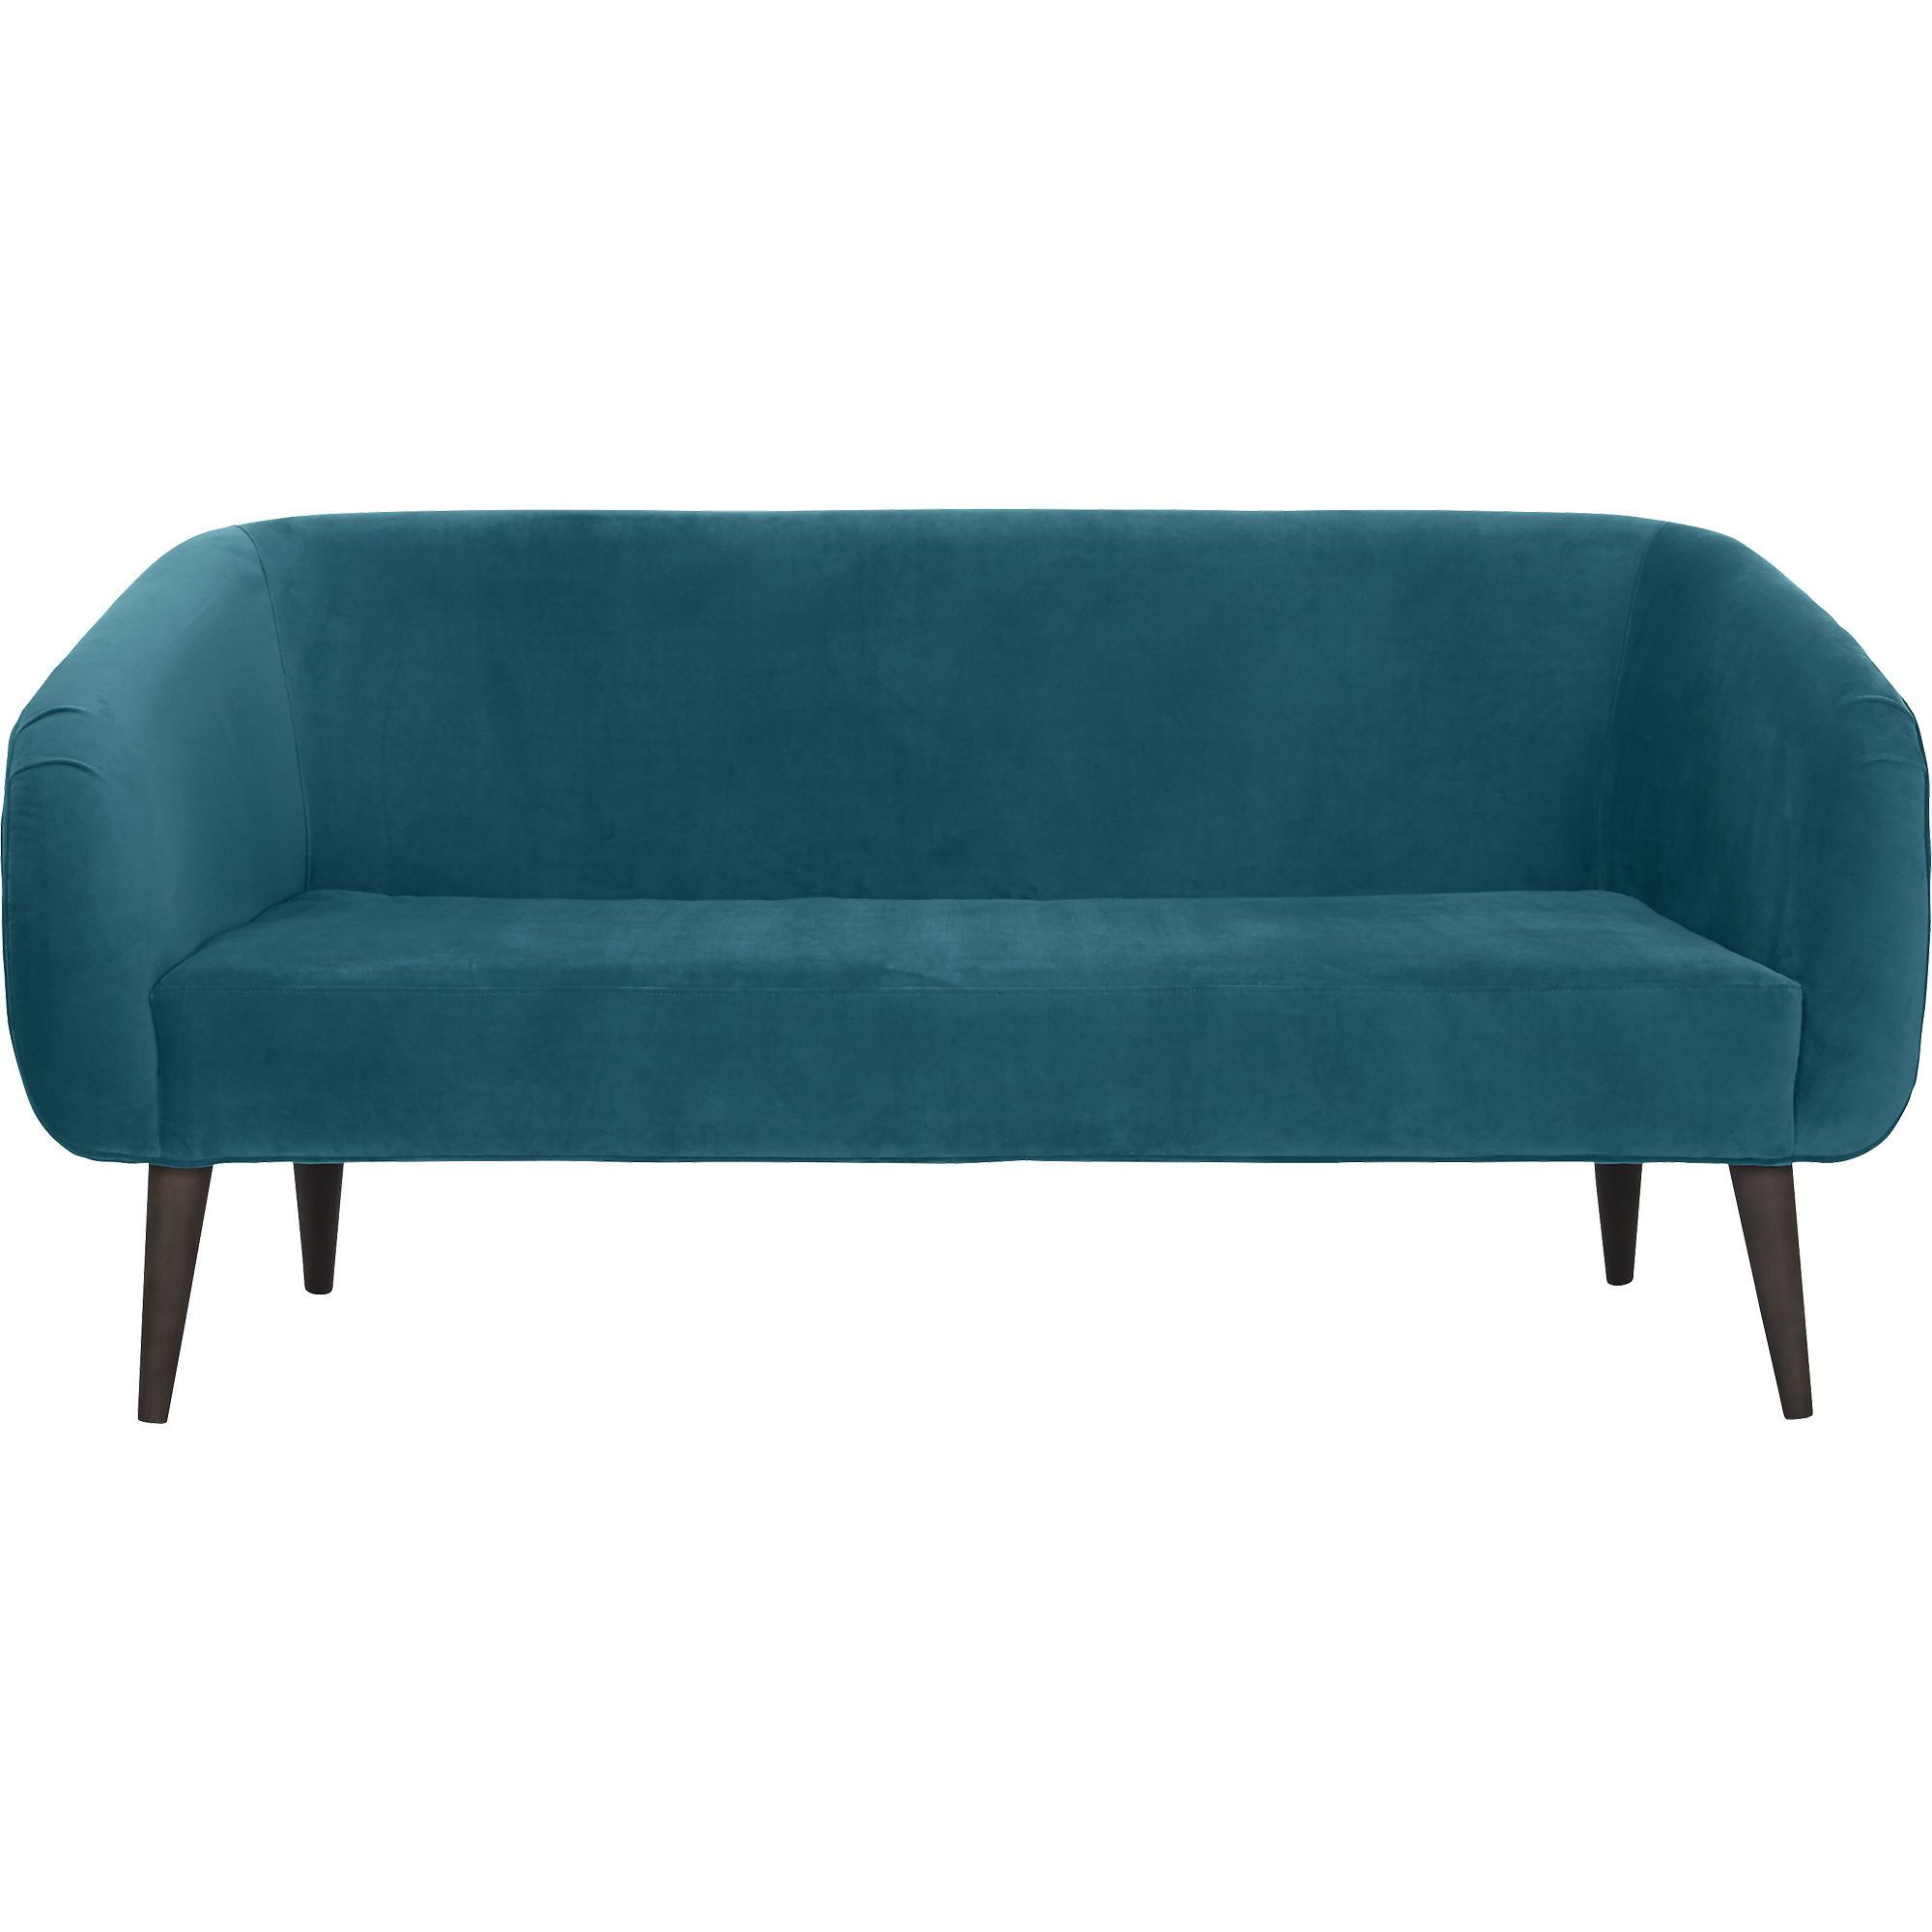 CB2 Rue Teal Velvet Apartment Sofa